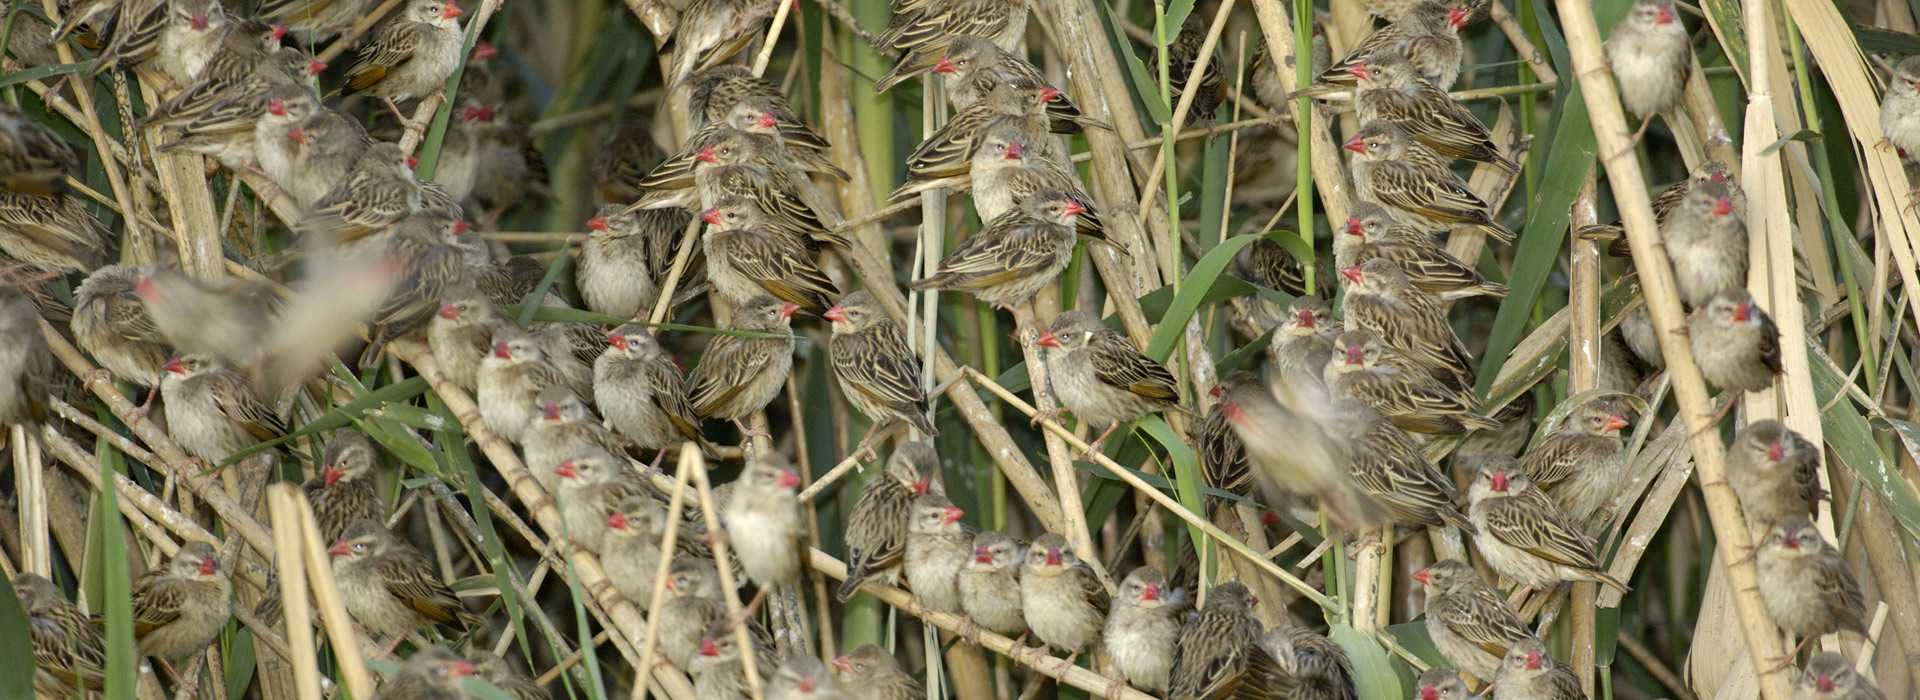 Masses Of Red-billed Quelea Birds On Tree